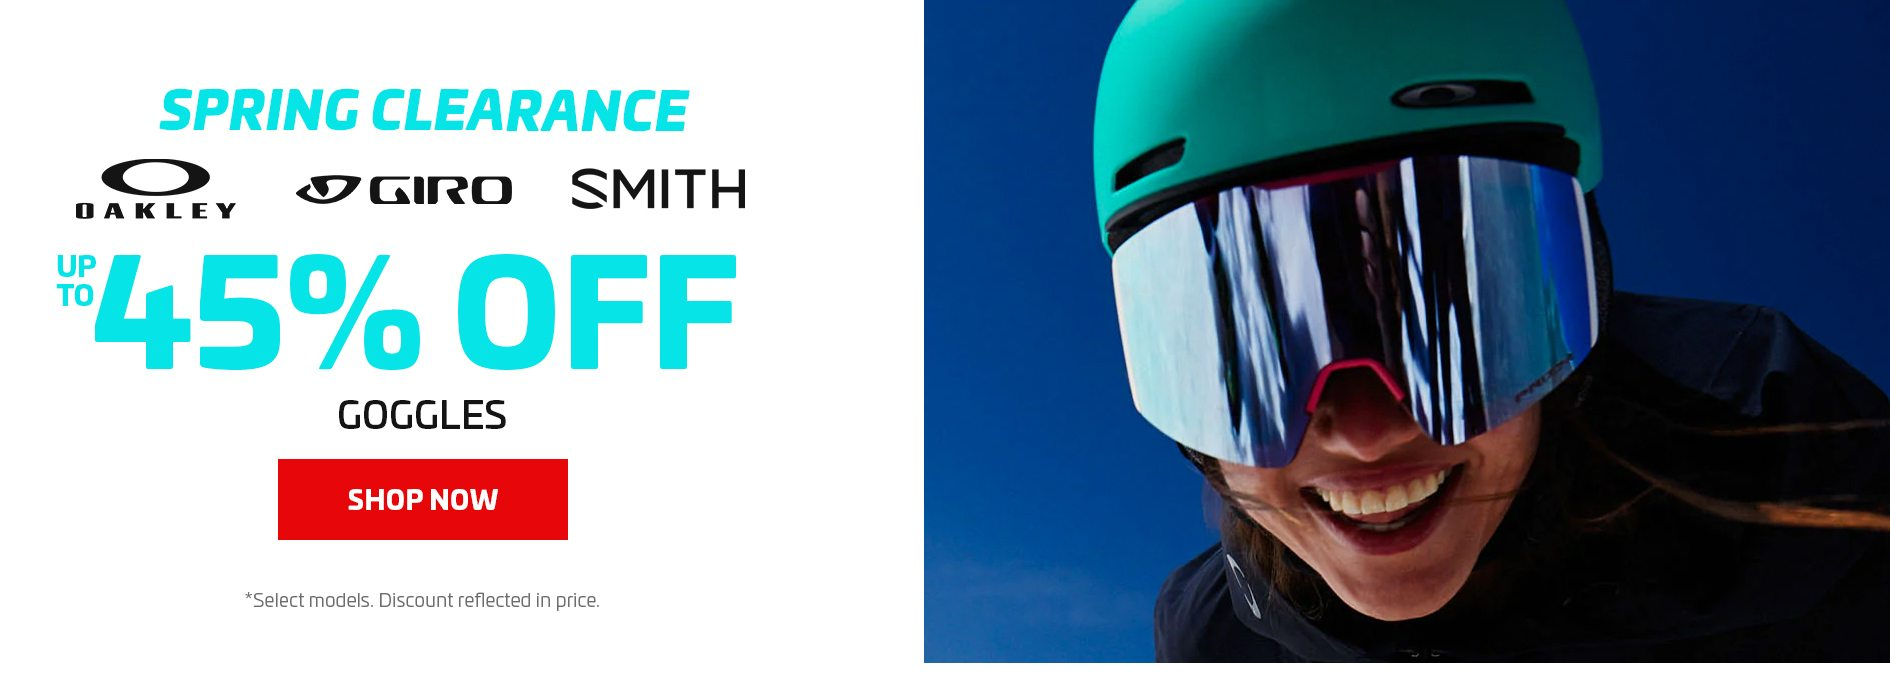 UP TO 45% OFF GOGGLES - FOOTER